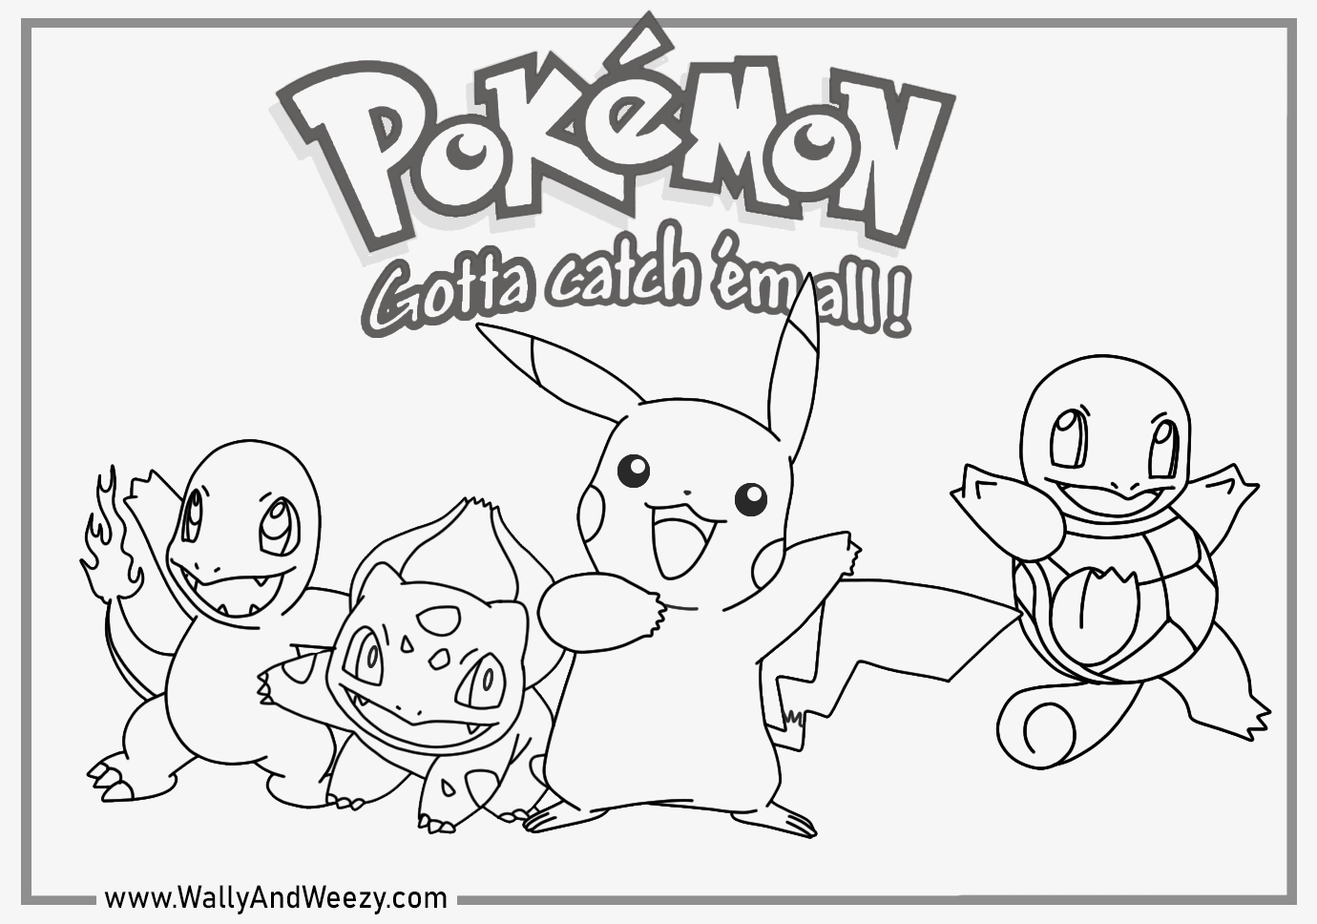 watch wally color pikachu bulbasaur squirtle and charmander!